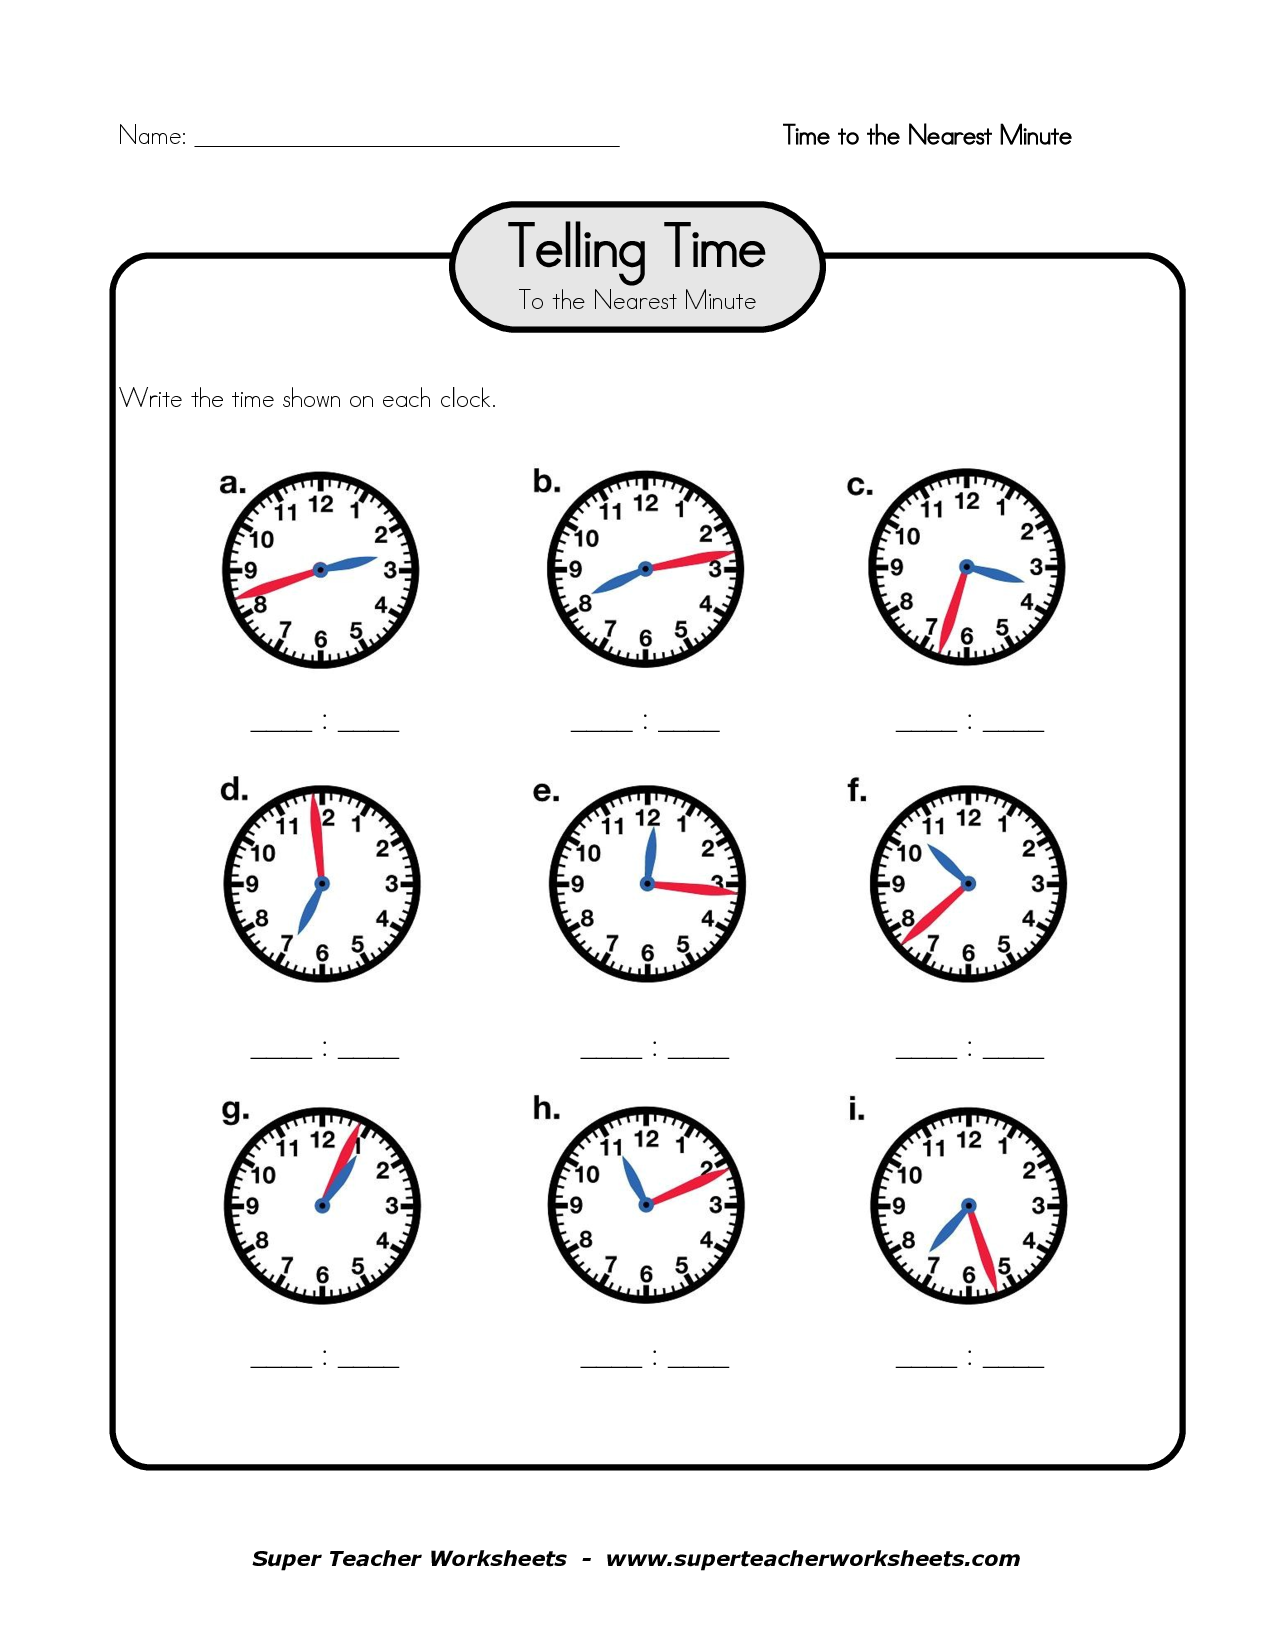 Worksheets Measuring Time Worksheets clock telling time worksheet printable worksheets for pdf